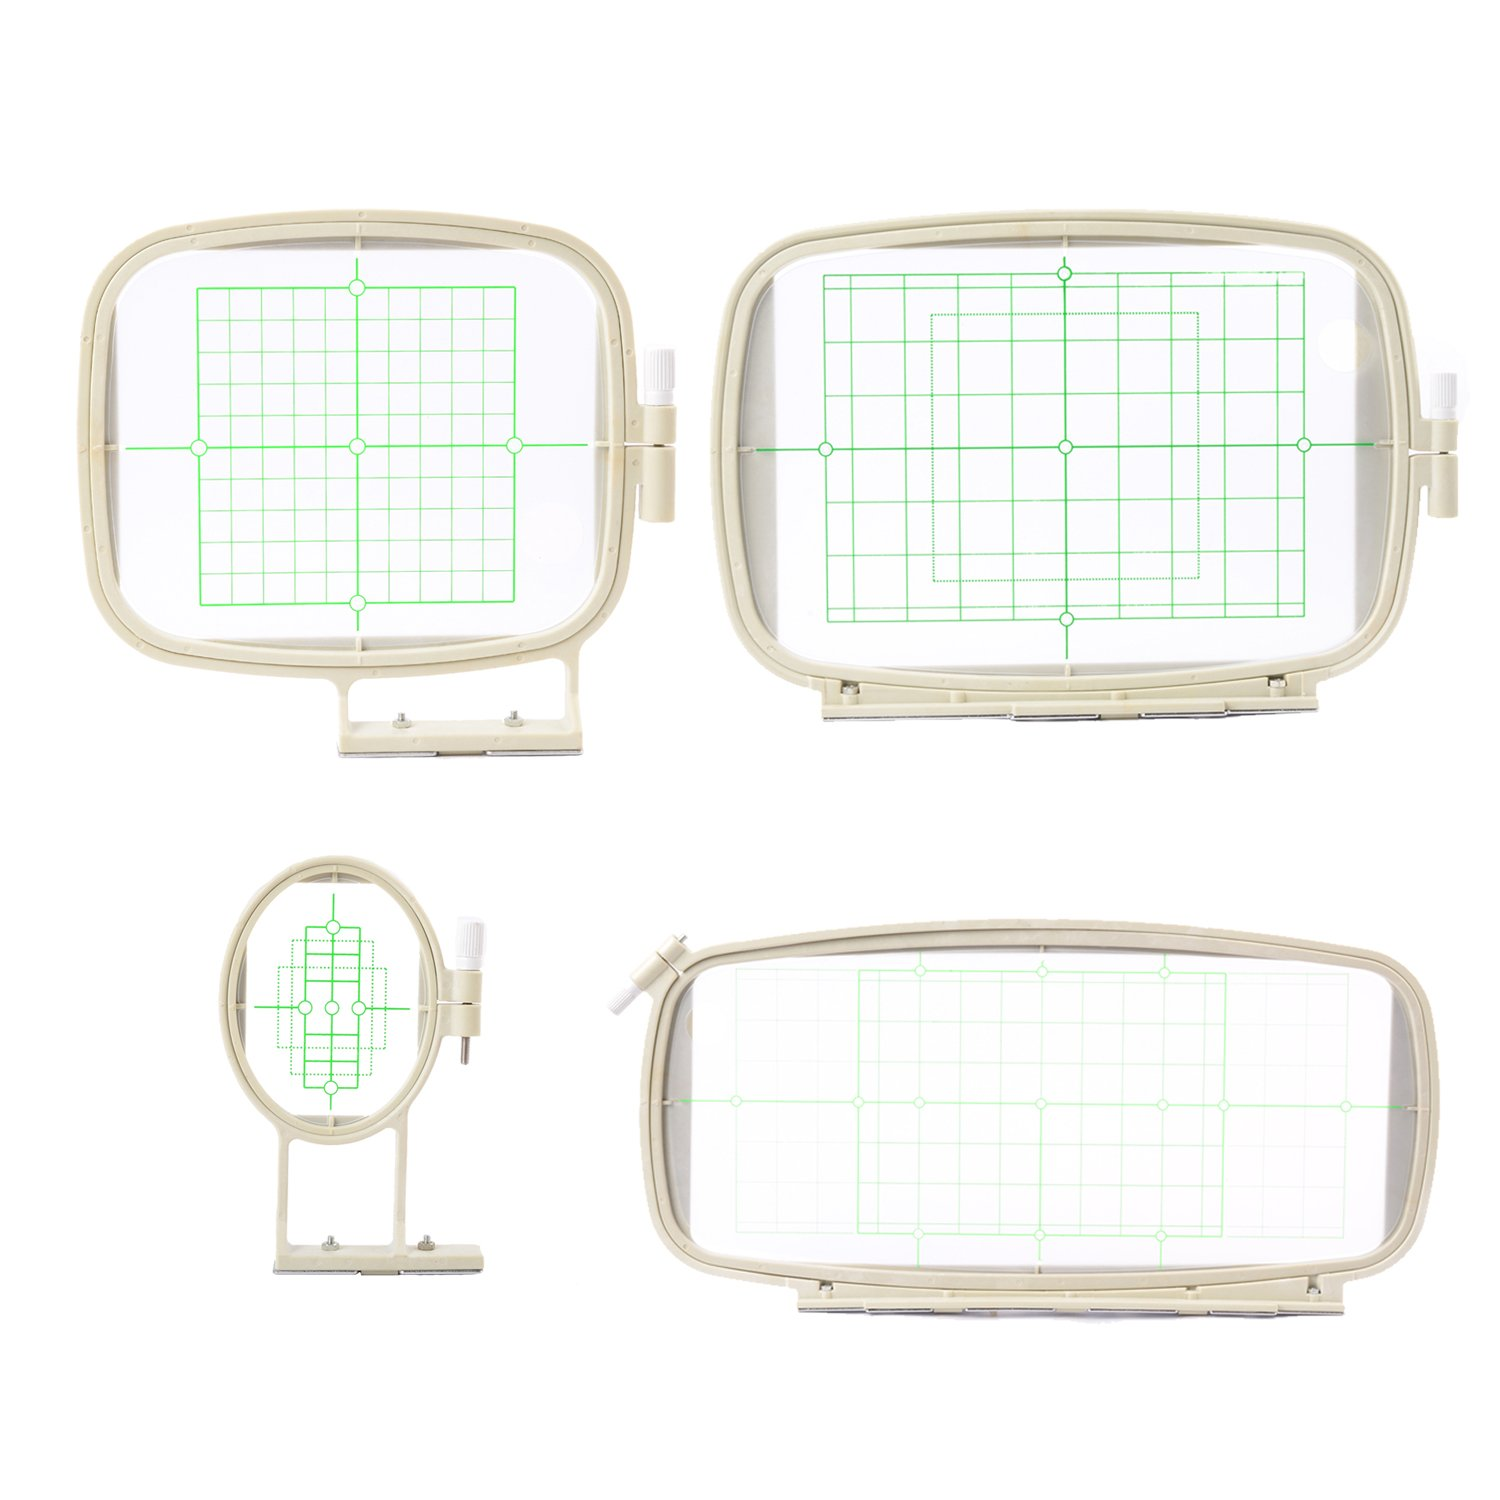 4 in 1 Embroidery Machine Hoops Set for Brother PE-700, PE-700II, PE-750D, PE-780D, Innovis 1000, Innovis 1200 Innovis 1250D, PC-6500, PC-8200, PC-8500, PC-8500D Kungfuking 4336934003